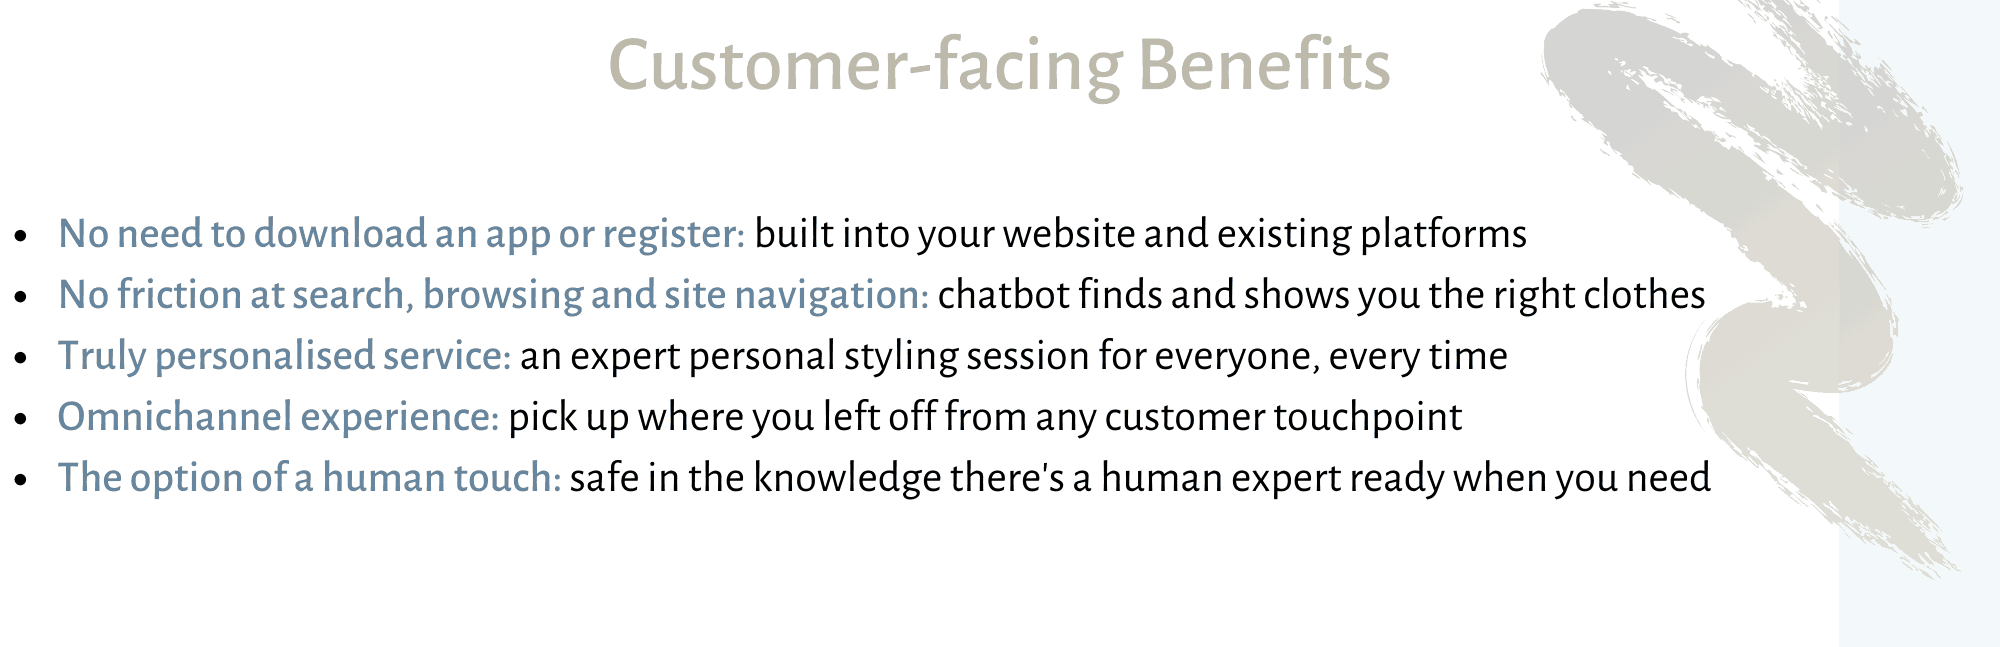 e-commerce chatbot customer benefits